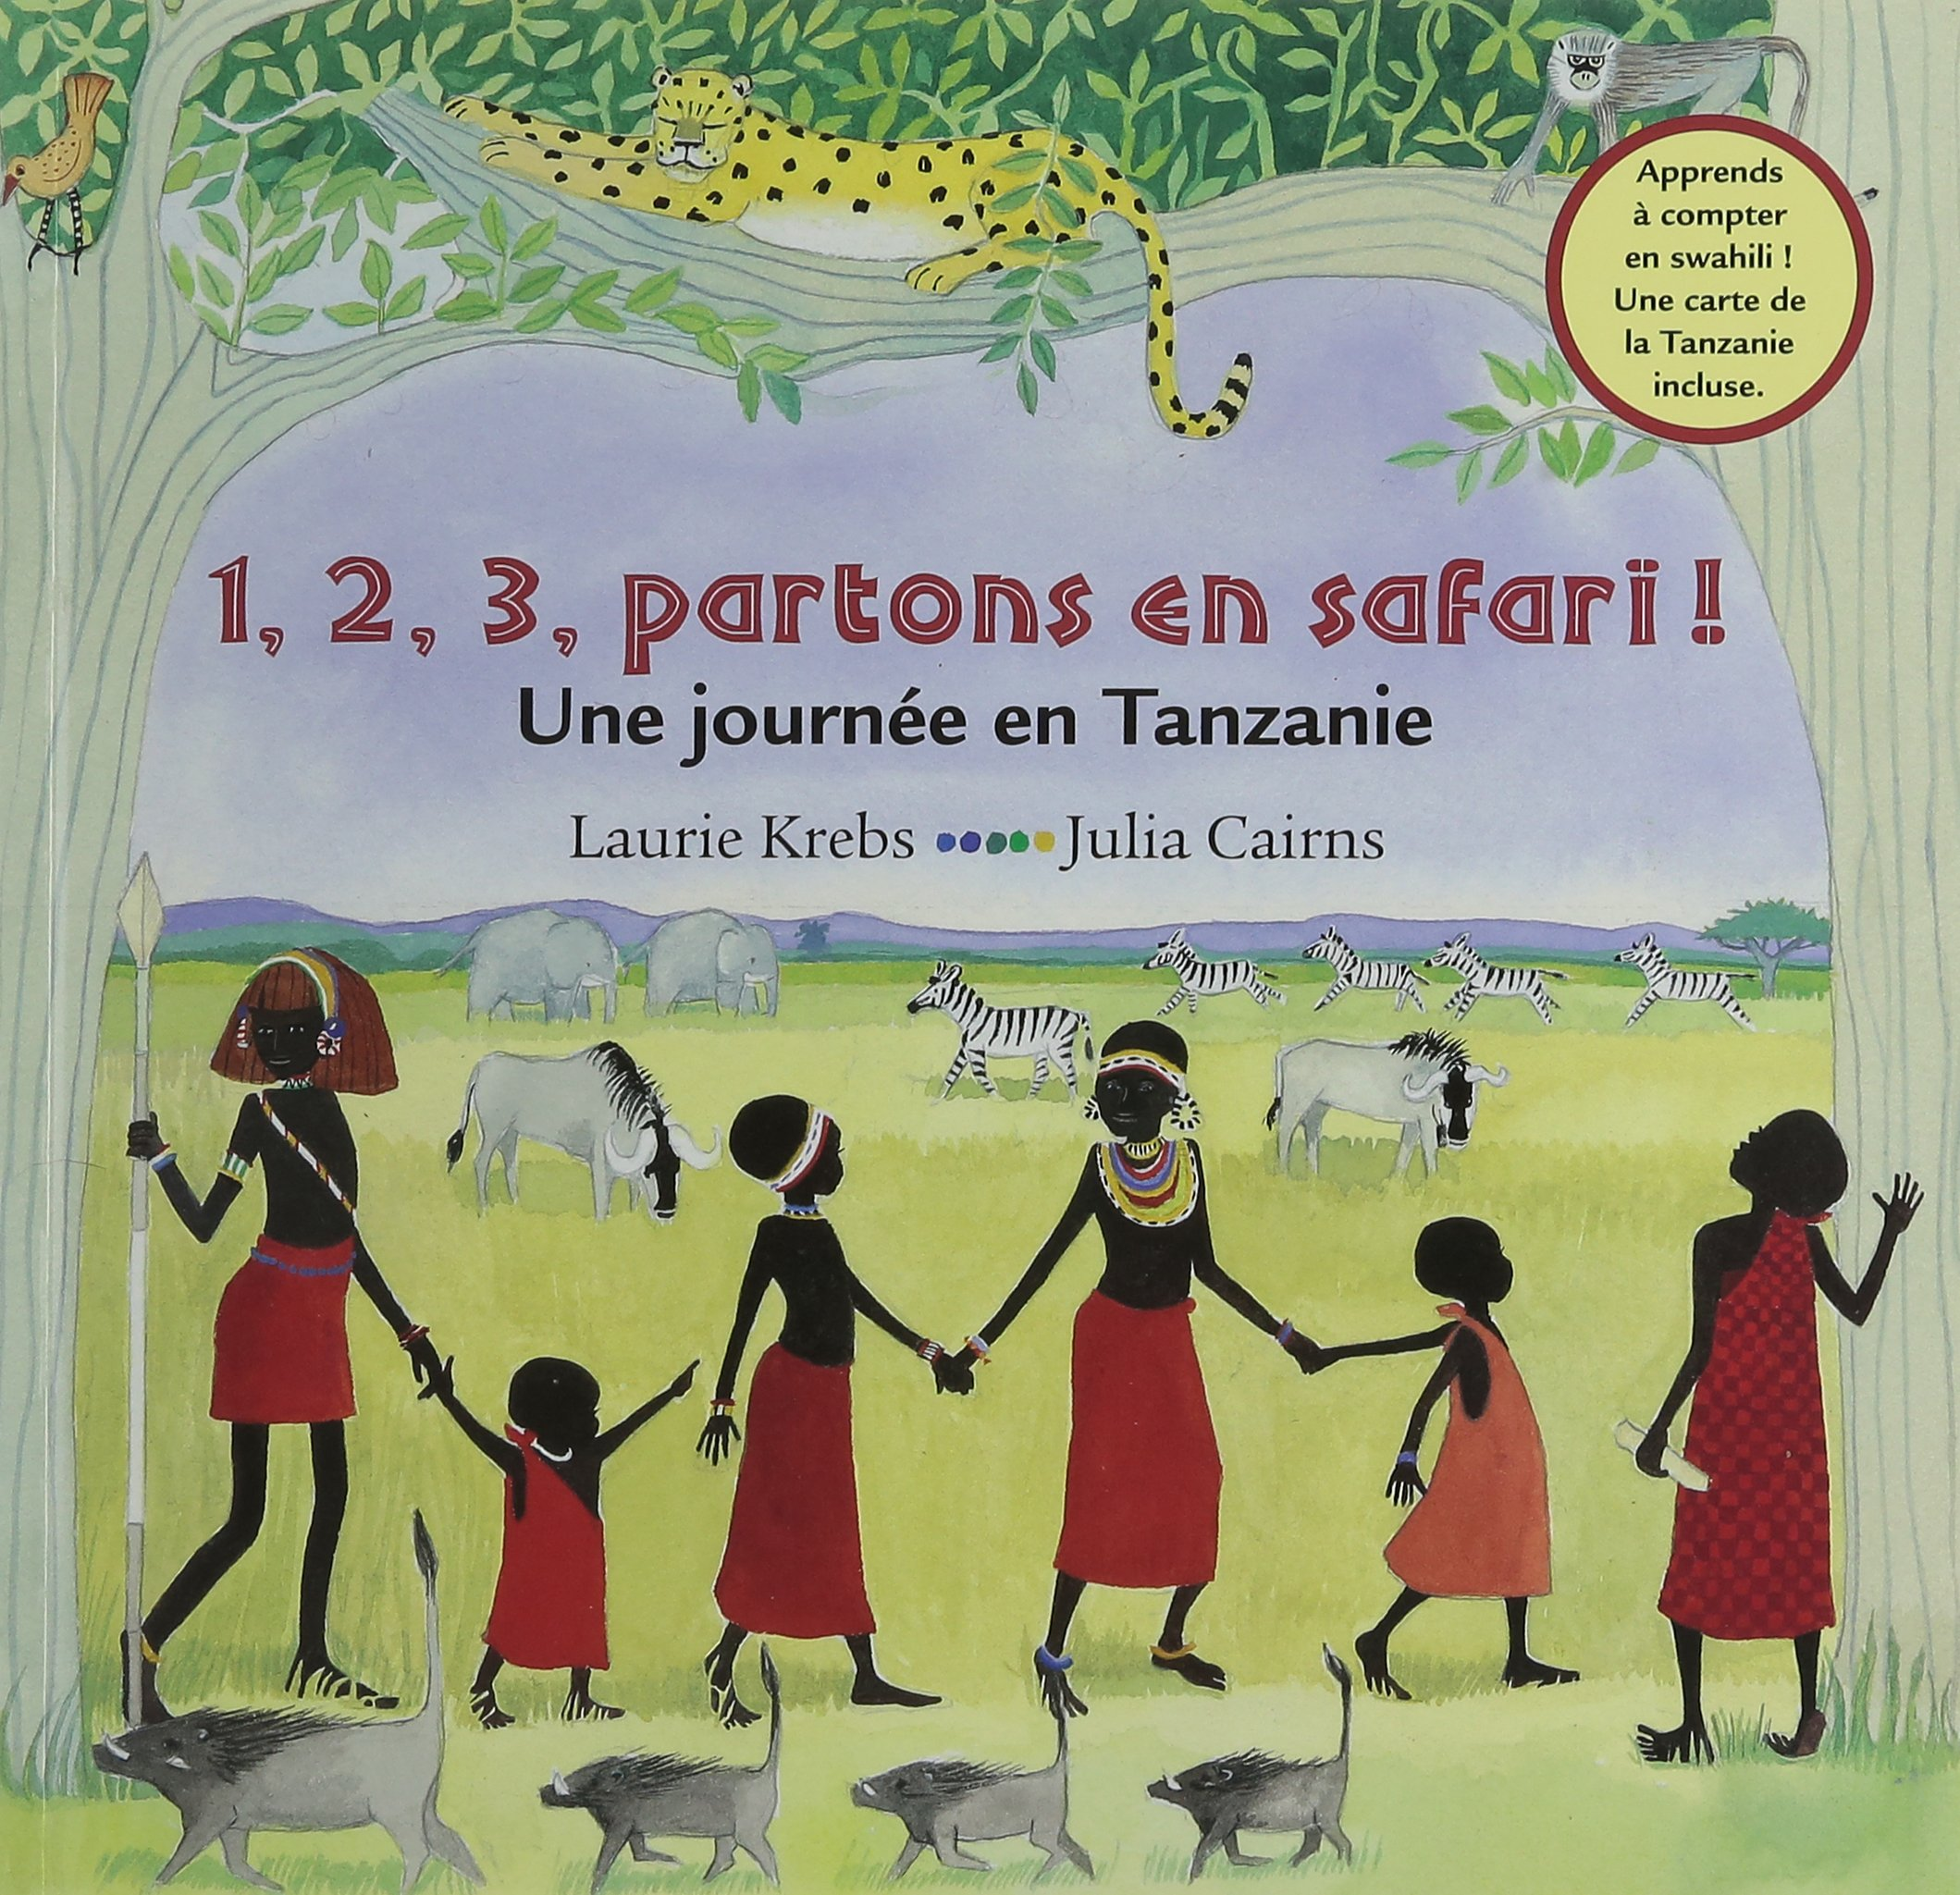 1,2, 3, partons en safari!: Une Journee En Tanzanie Broché – 30 juin 2014 Laurie Krebs Julia Cairns Barefoot Books 1782851410